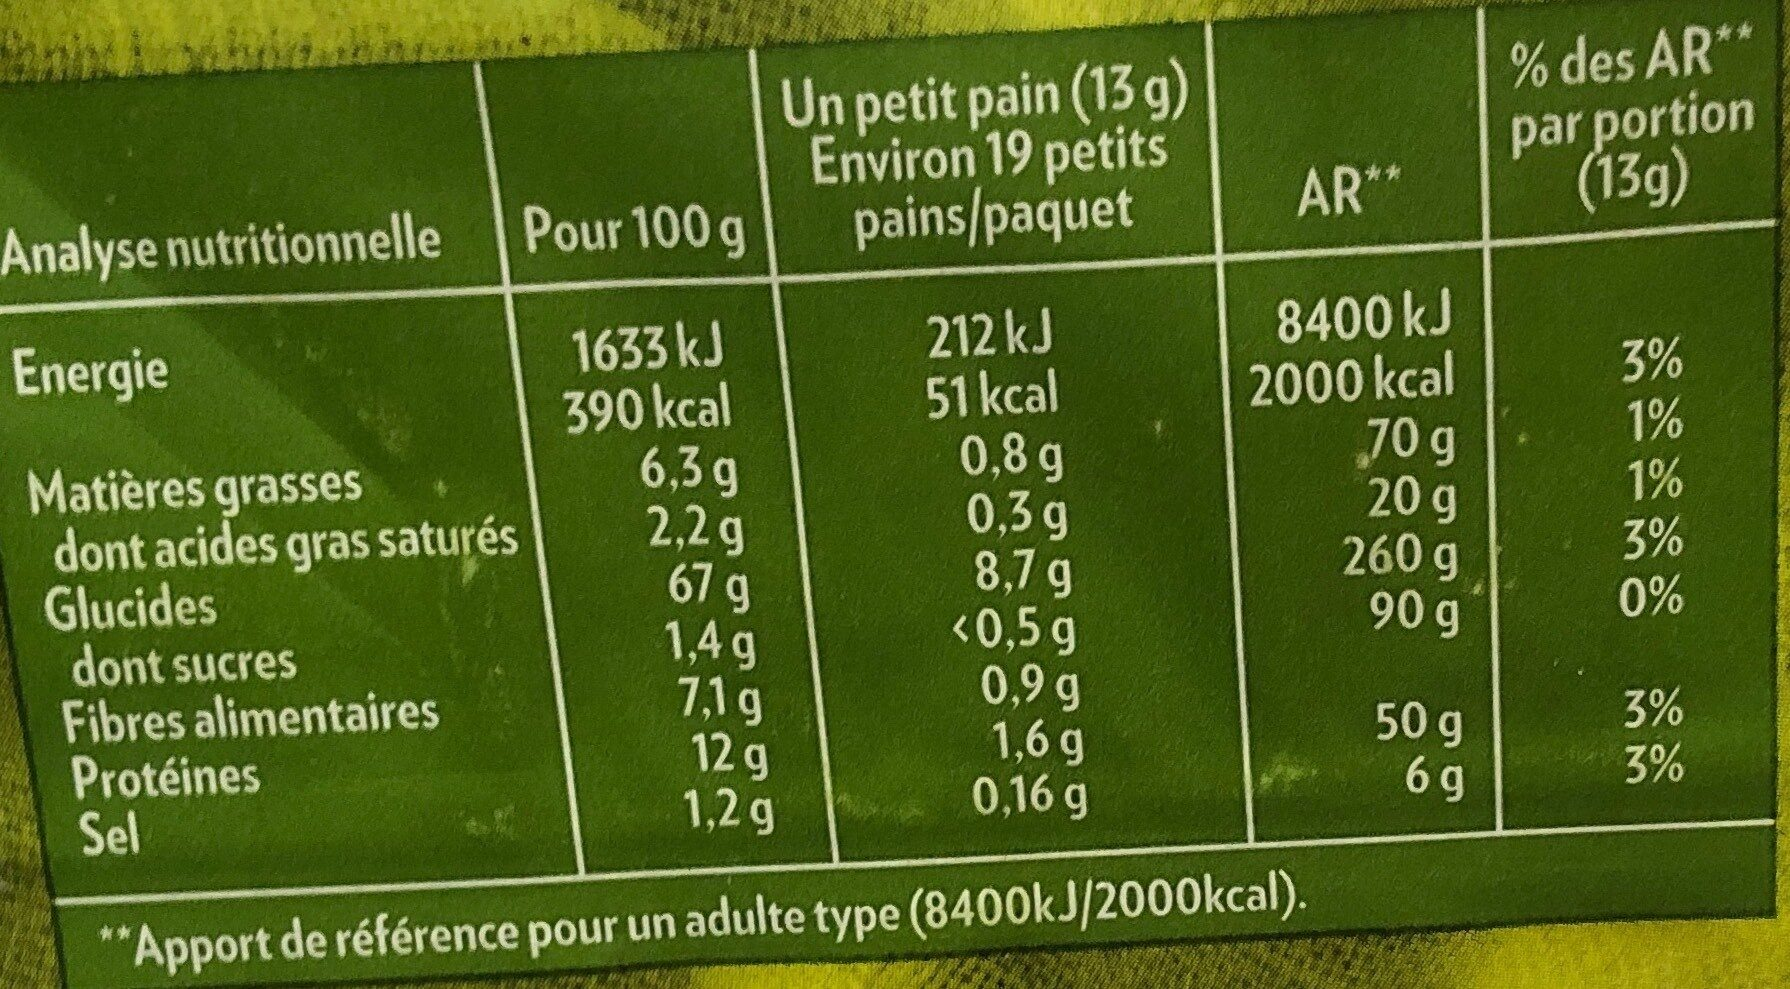 Krisprolls petits pains complets - Nutrition facts - fr